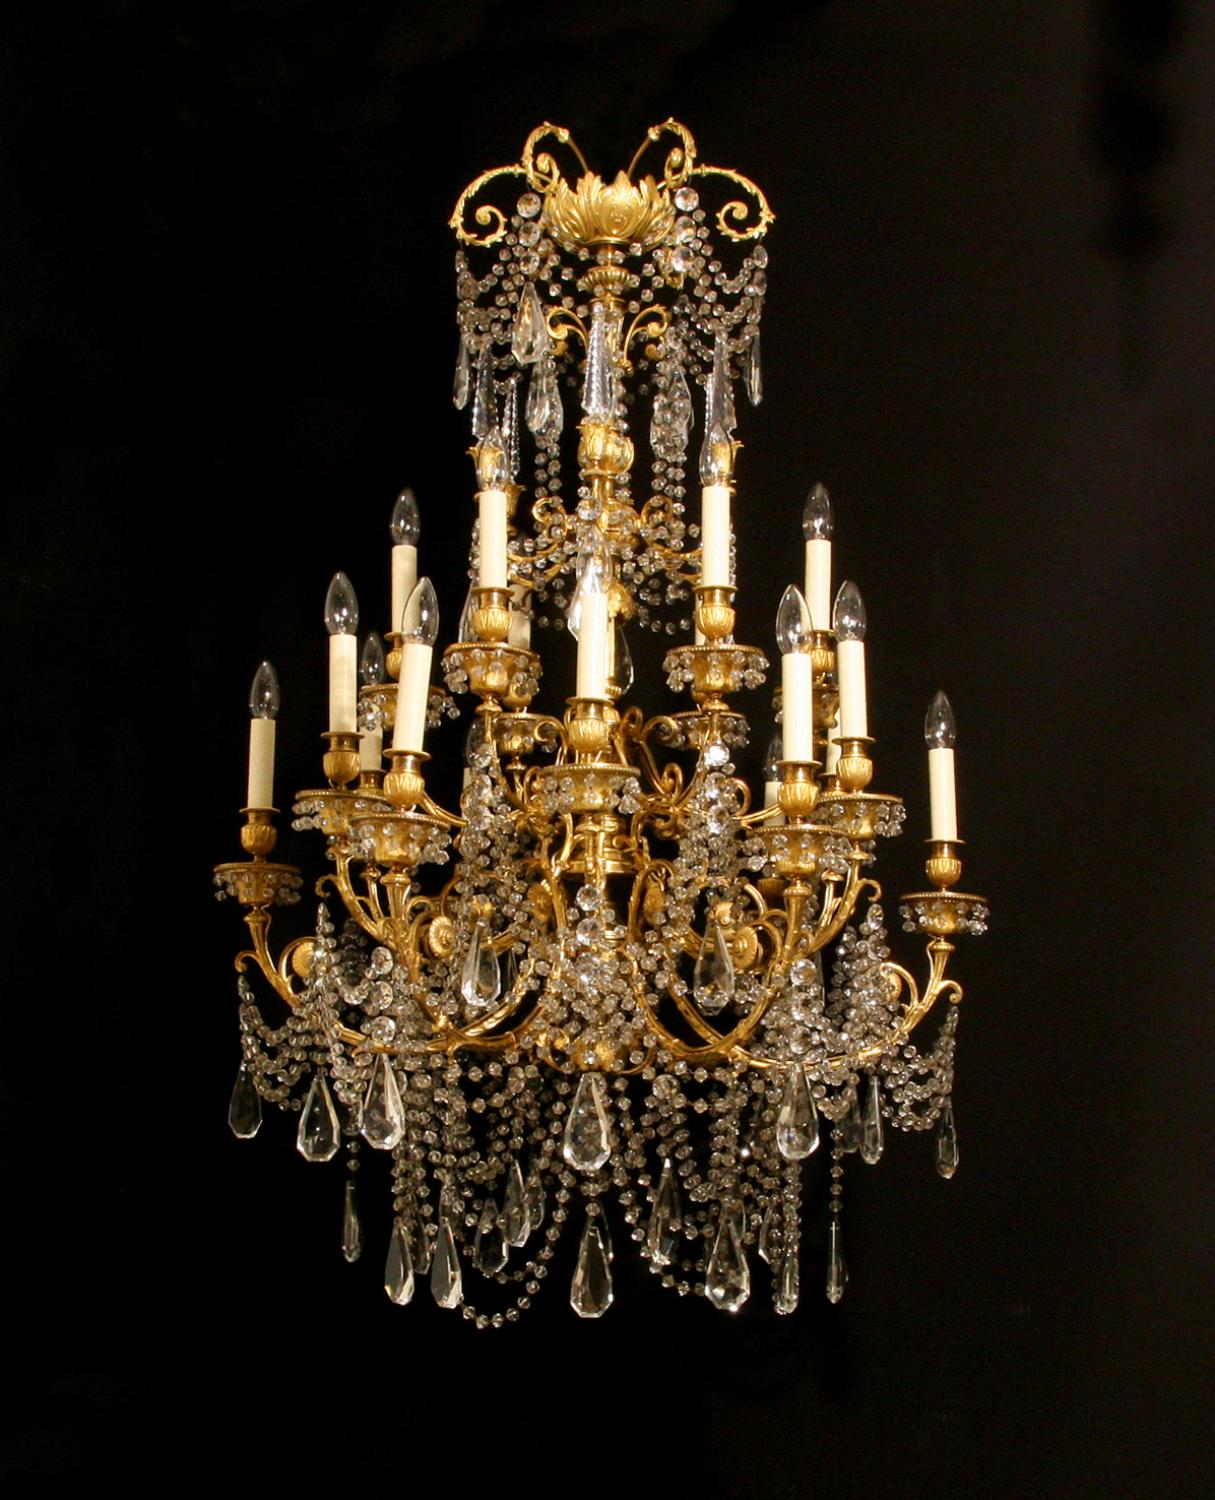 An exceptional Louis XVI style chandelier